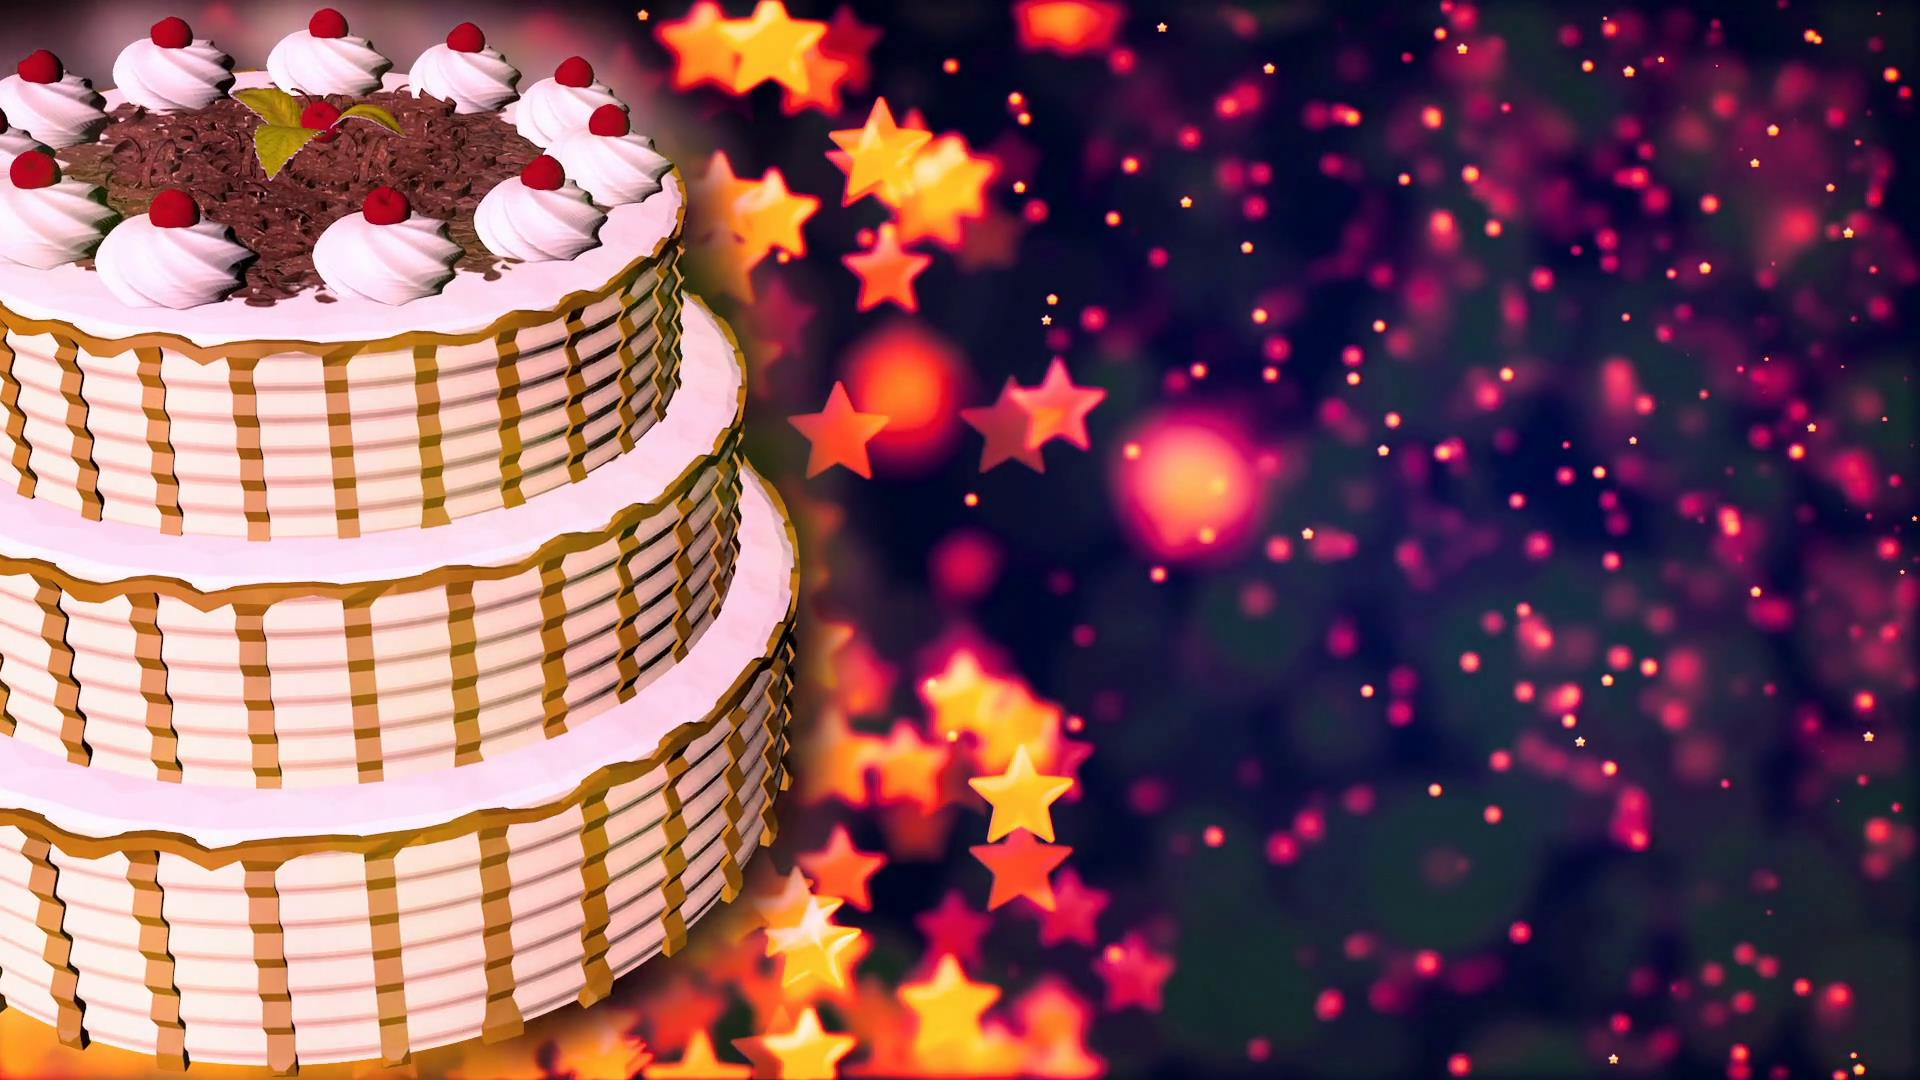 birthday background images hd ; happy-birthday-cake-loopable-abstract-background_bilspranqx_thumbnail-full01